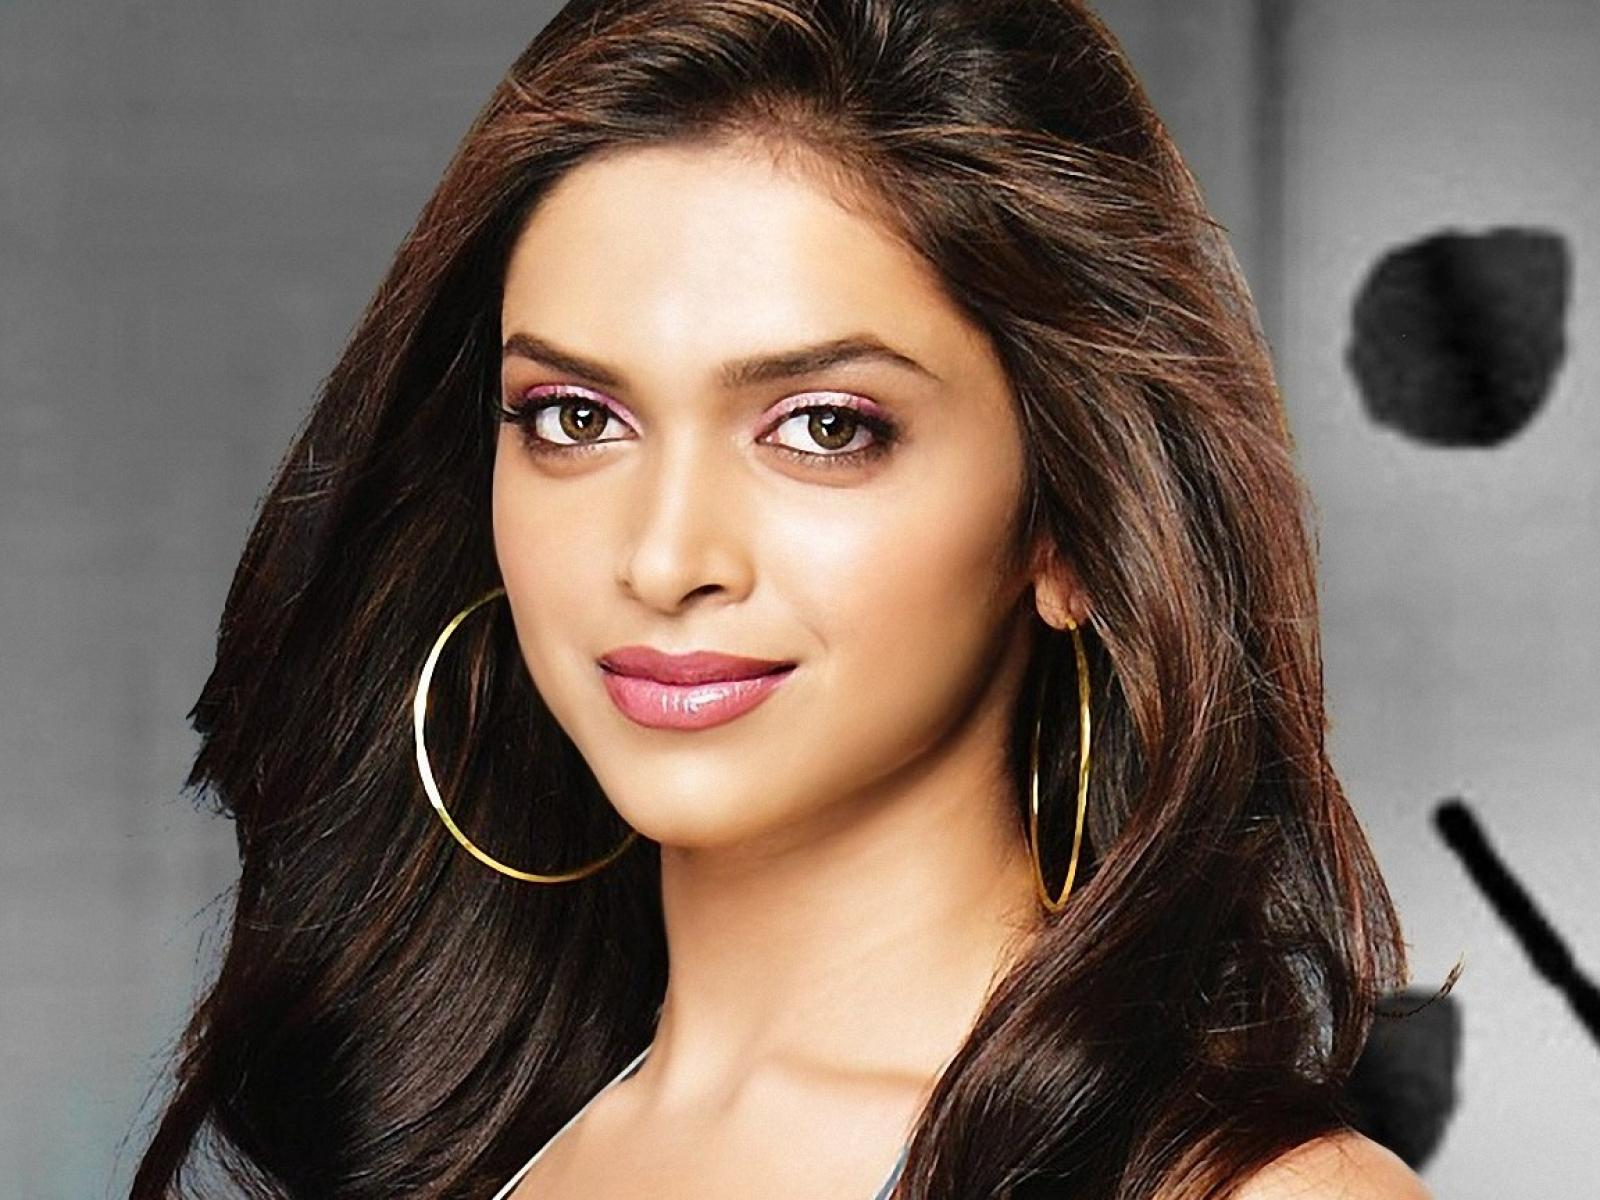 Deepika Padukone Latest HD Wallpapers 2012, Deepika Padukone Wallpapers ~ Full HD Wallpapers